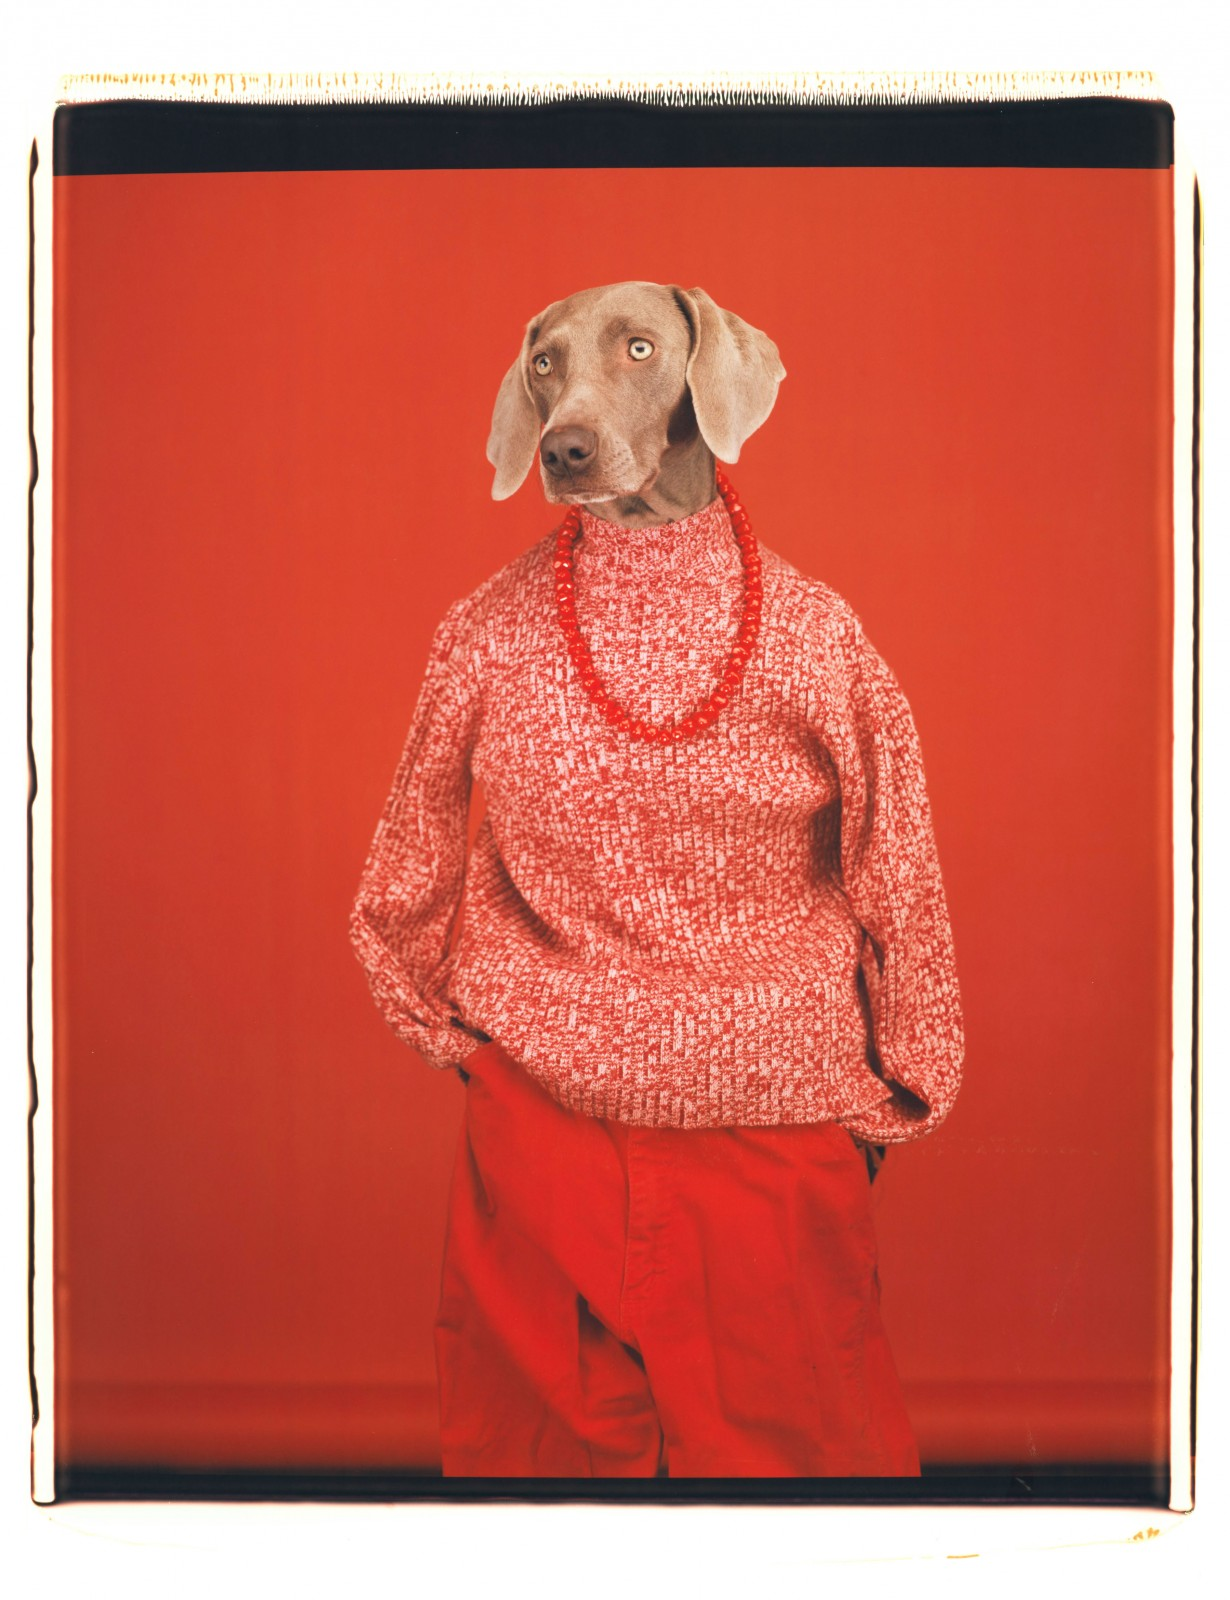 GALERIE INCOGNITO aime WILLIAM WEGMAN